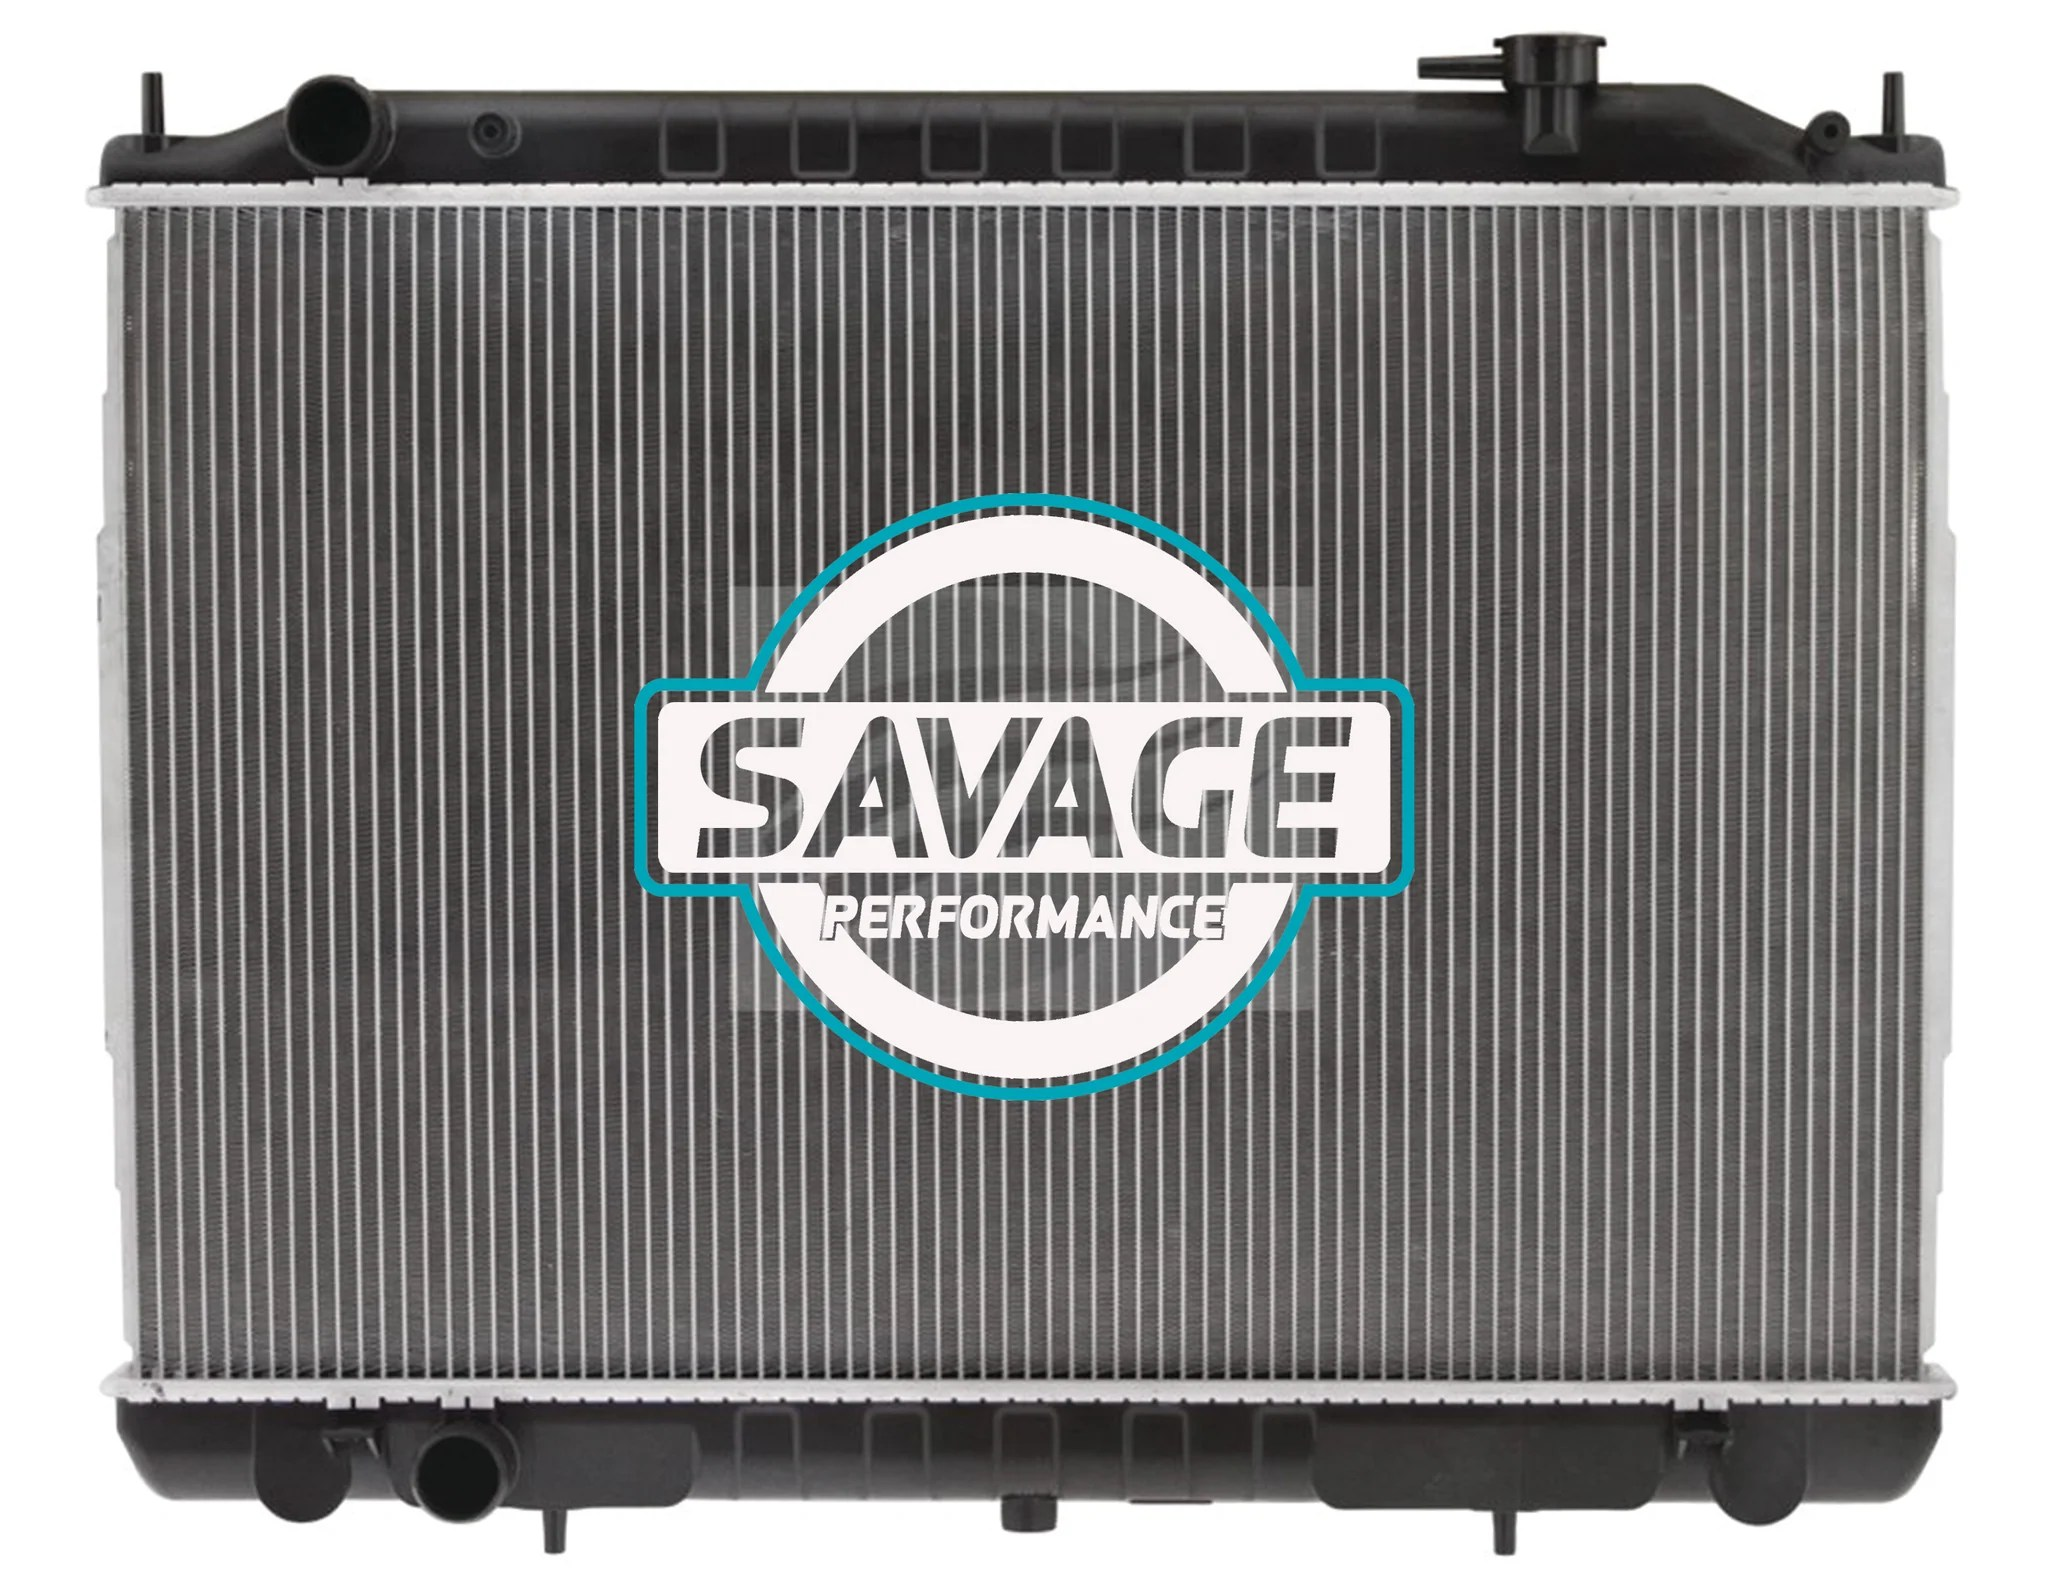 medium resolution of nissan navara d22 2009 yd25 2 5l dsl radiator savage performance and spares